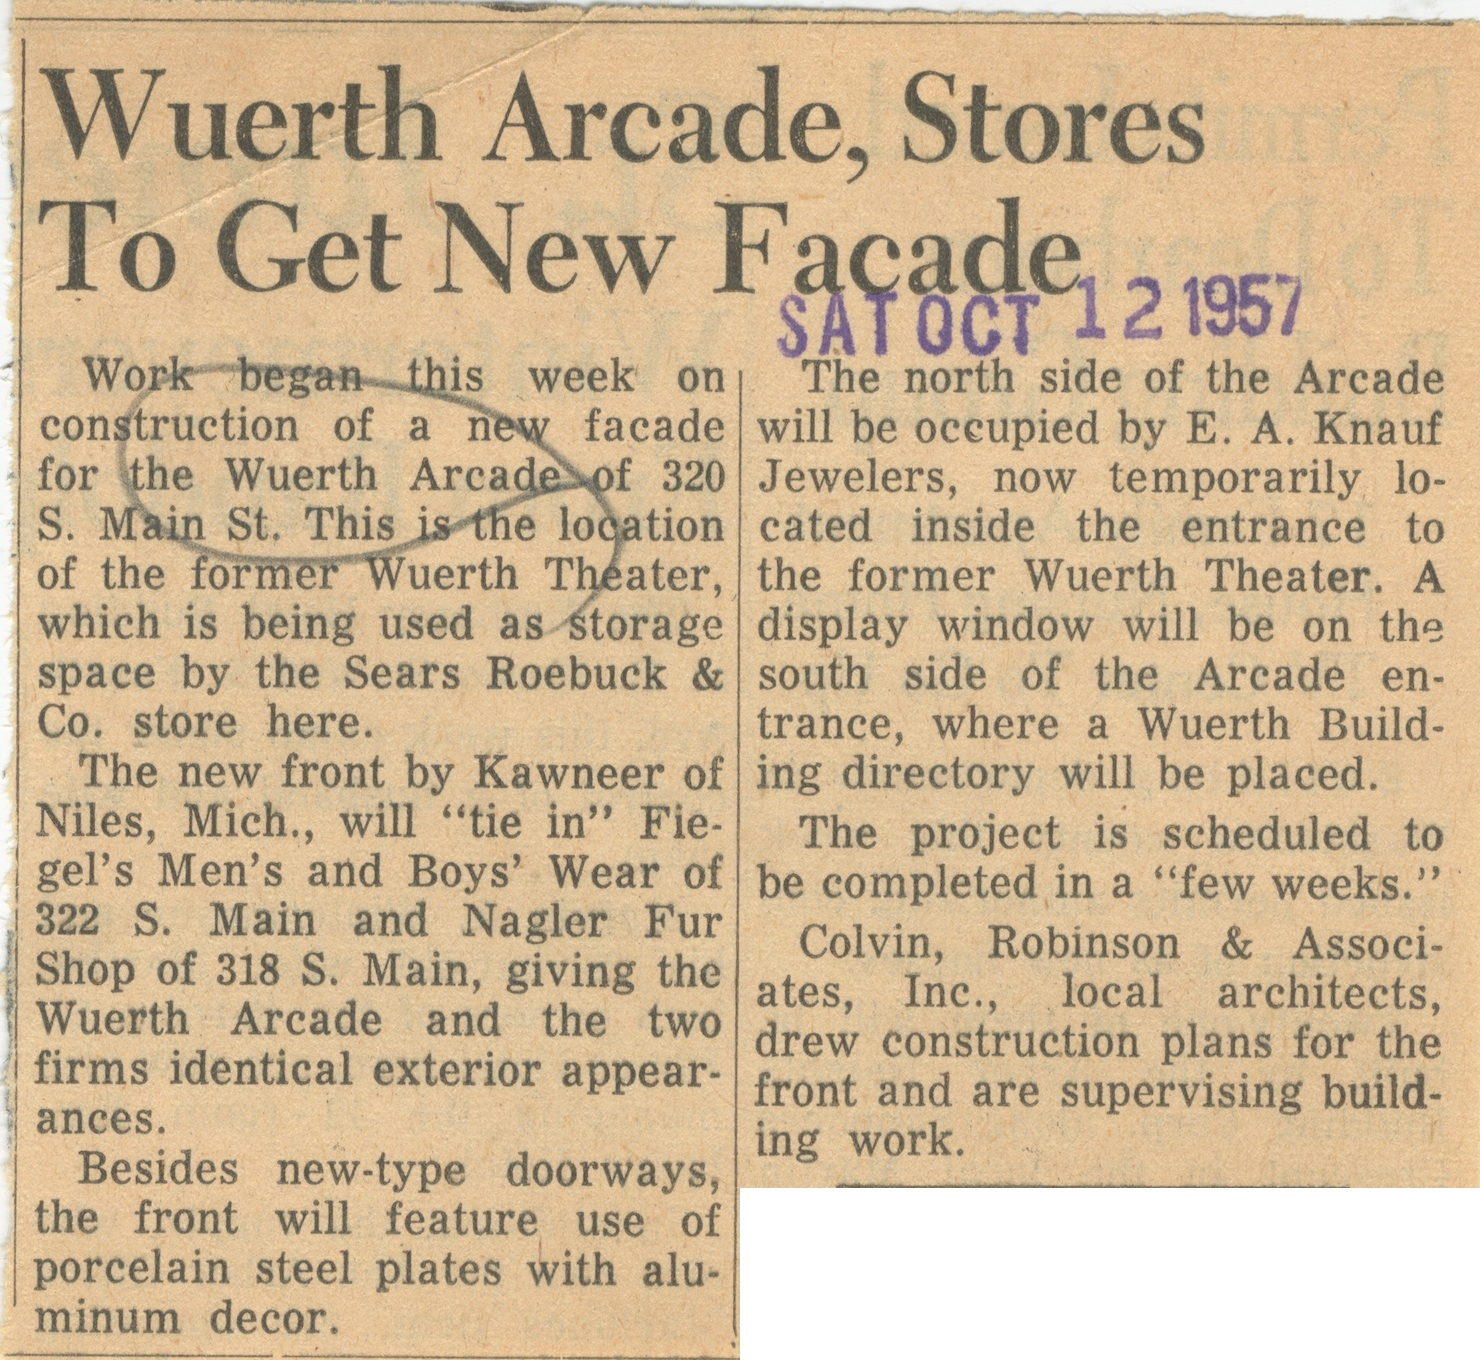 Wuerth Arcade, Stores To Get New Facade image